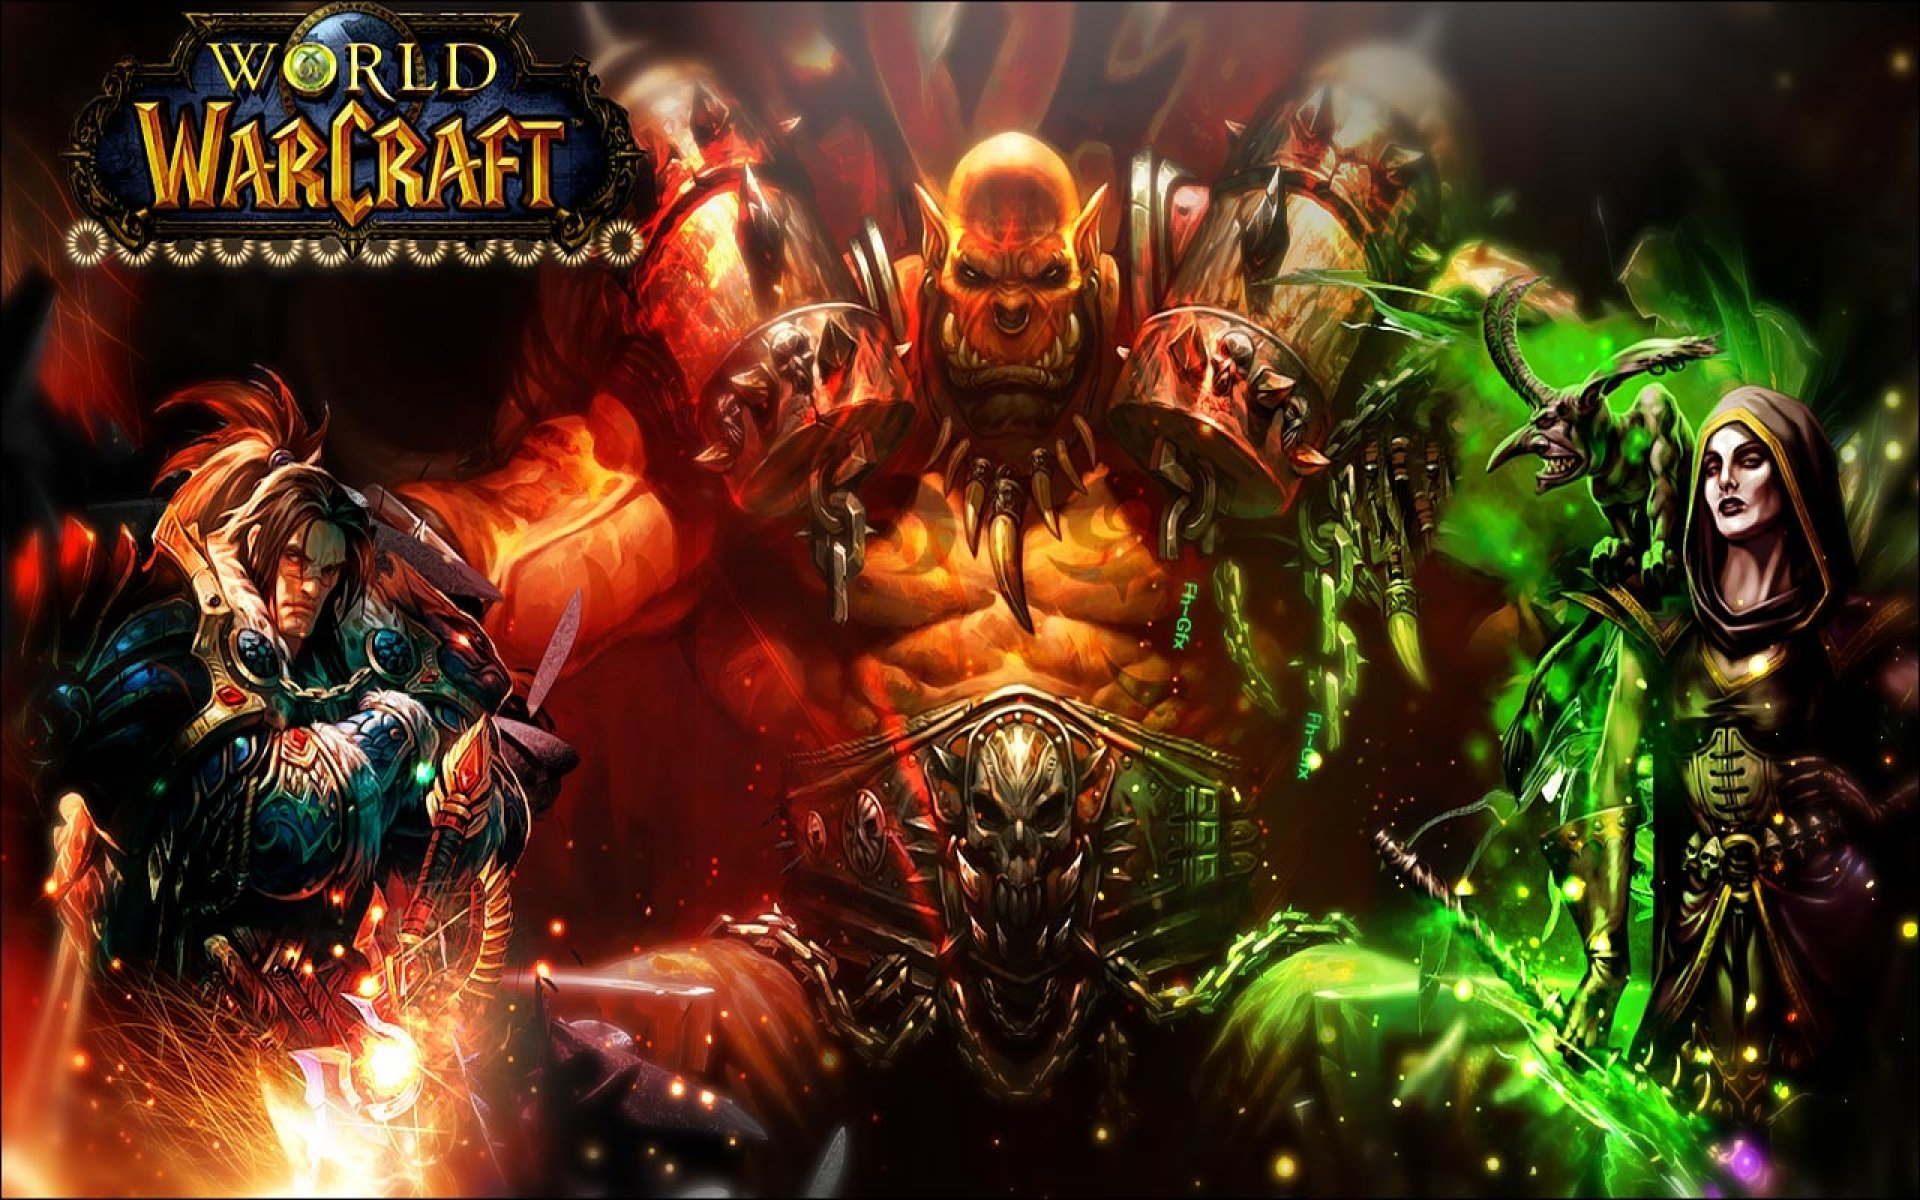 World of warcraft dirty pics erotic photos